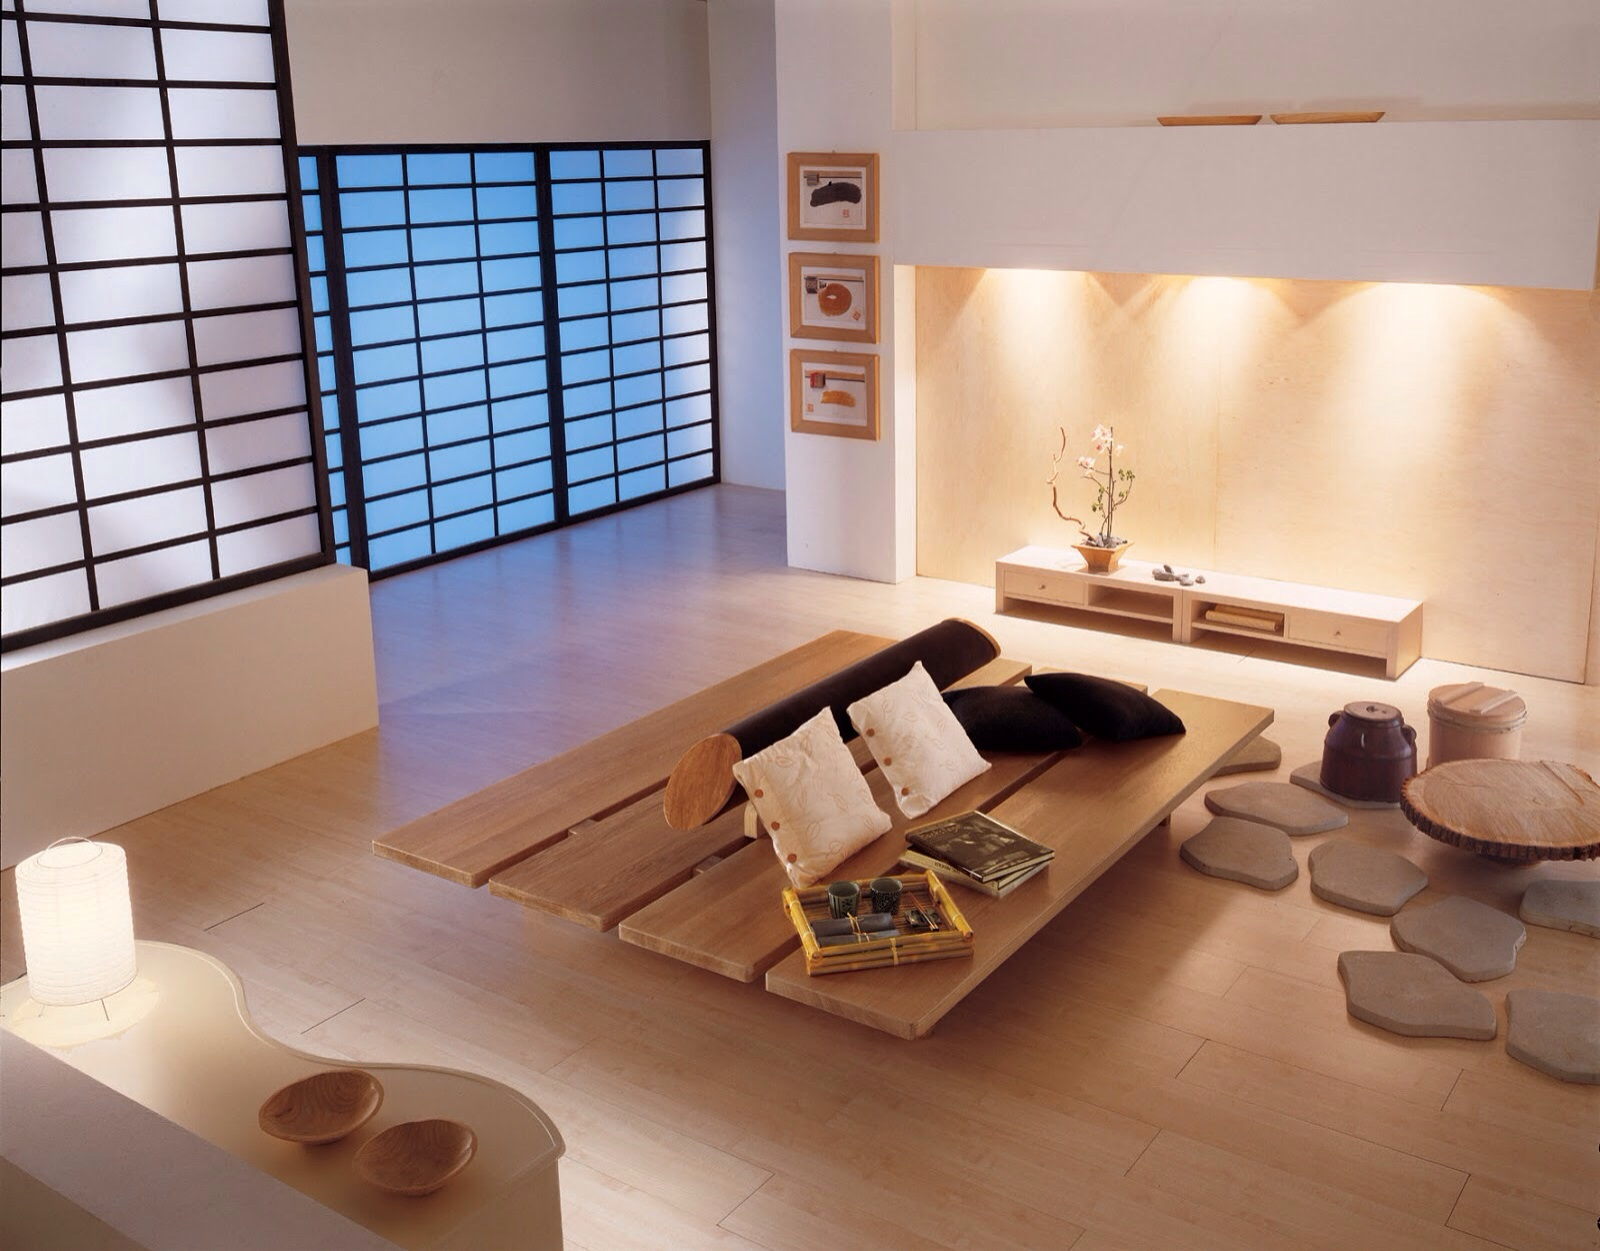 Zen furniture design Apartment Interior Design Ideas Zen Inspired Interior Design